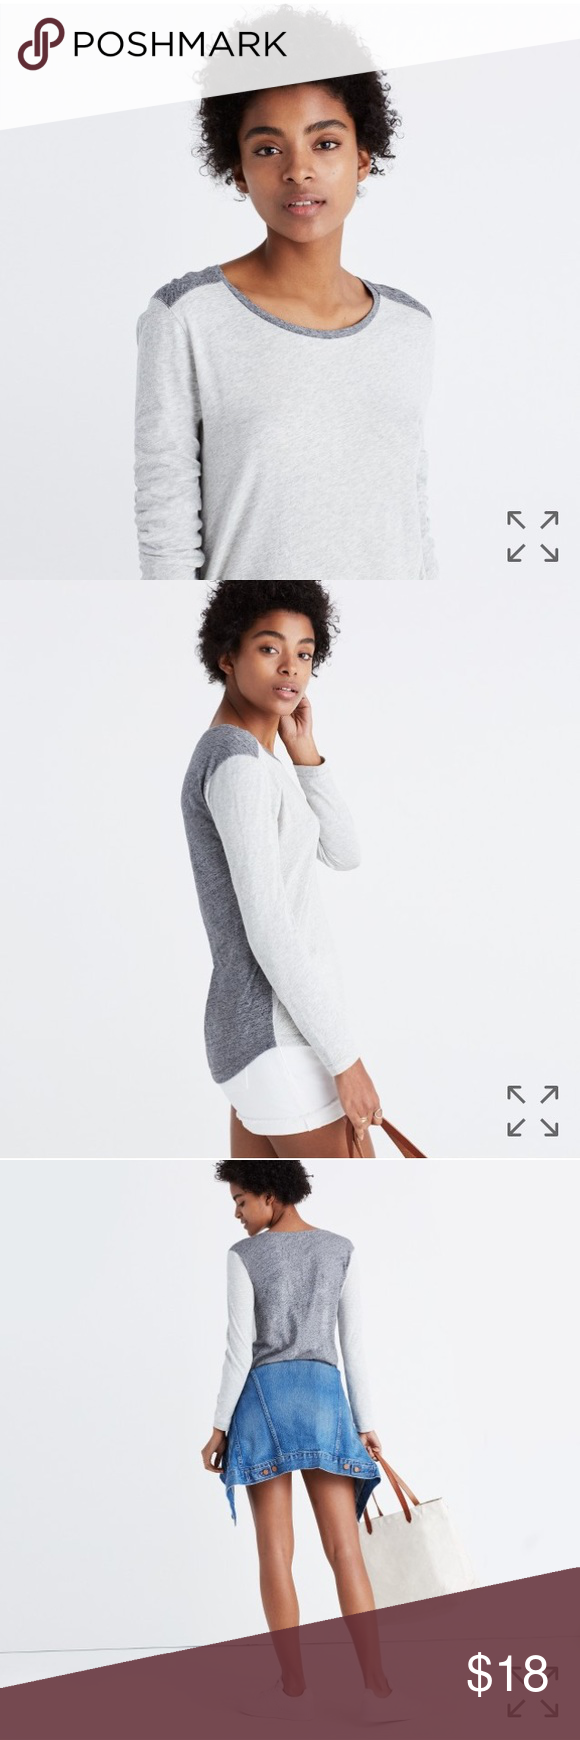 Madewell whisper cotton long-sleeve tee-colorblock Madewell whisper cotton long-sleeve crewneck tee in colorblock.  Size Medium.  PRODUCT DETAILS It's no secret, our best-selling crewneck tee is the kind of forever favorite you'll want in every color. Fashioned of light and airy slub cotton, this T-shirt is live-in-it soft and perfectly draped—one to tell your friends about, in other words. Lightweight, excellent used condition. Smoke free home.  True to size. Cotton. Machine wash. Import…